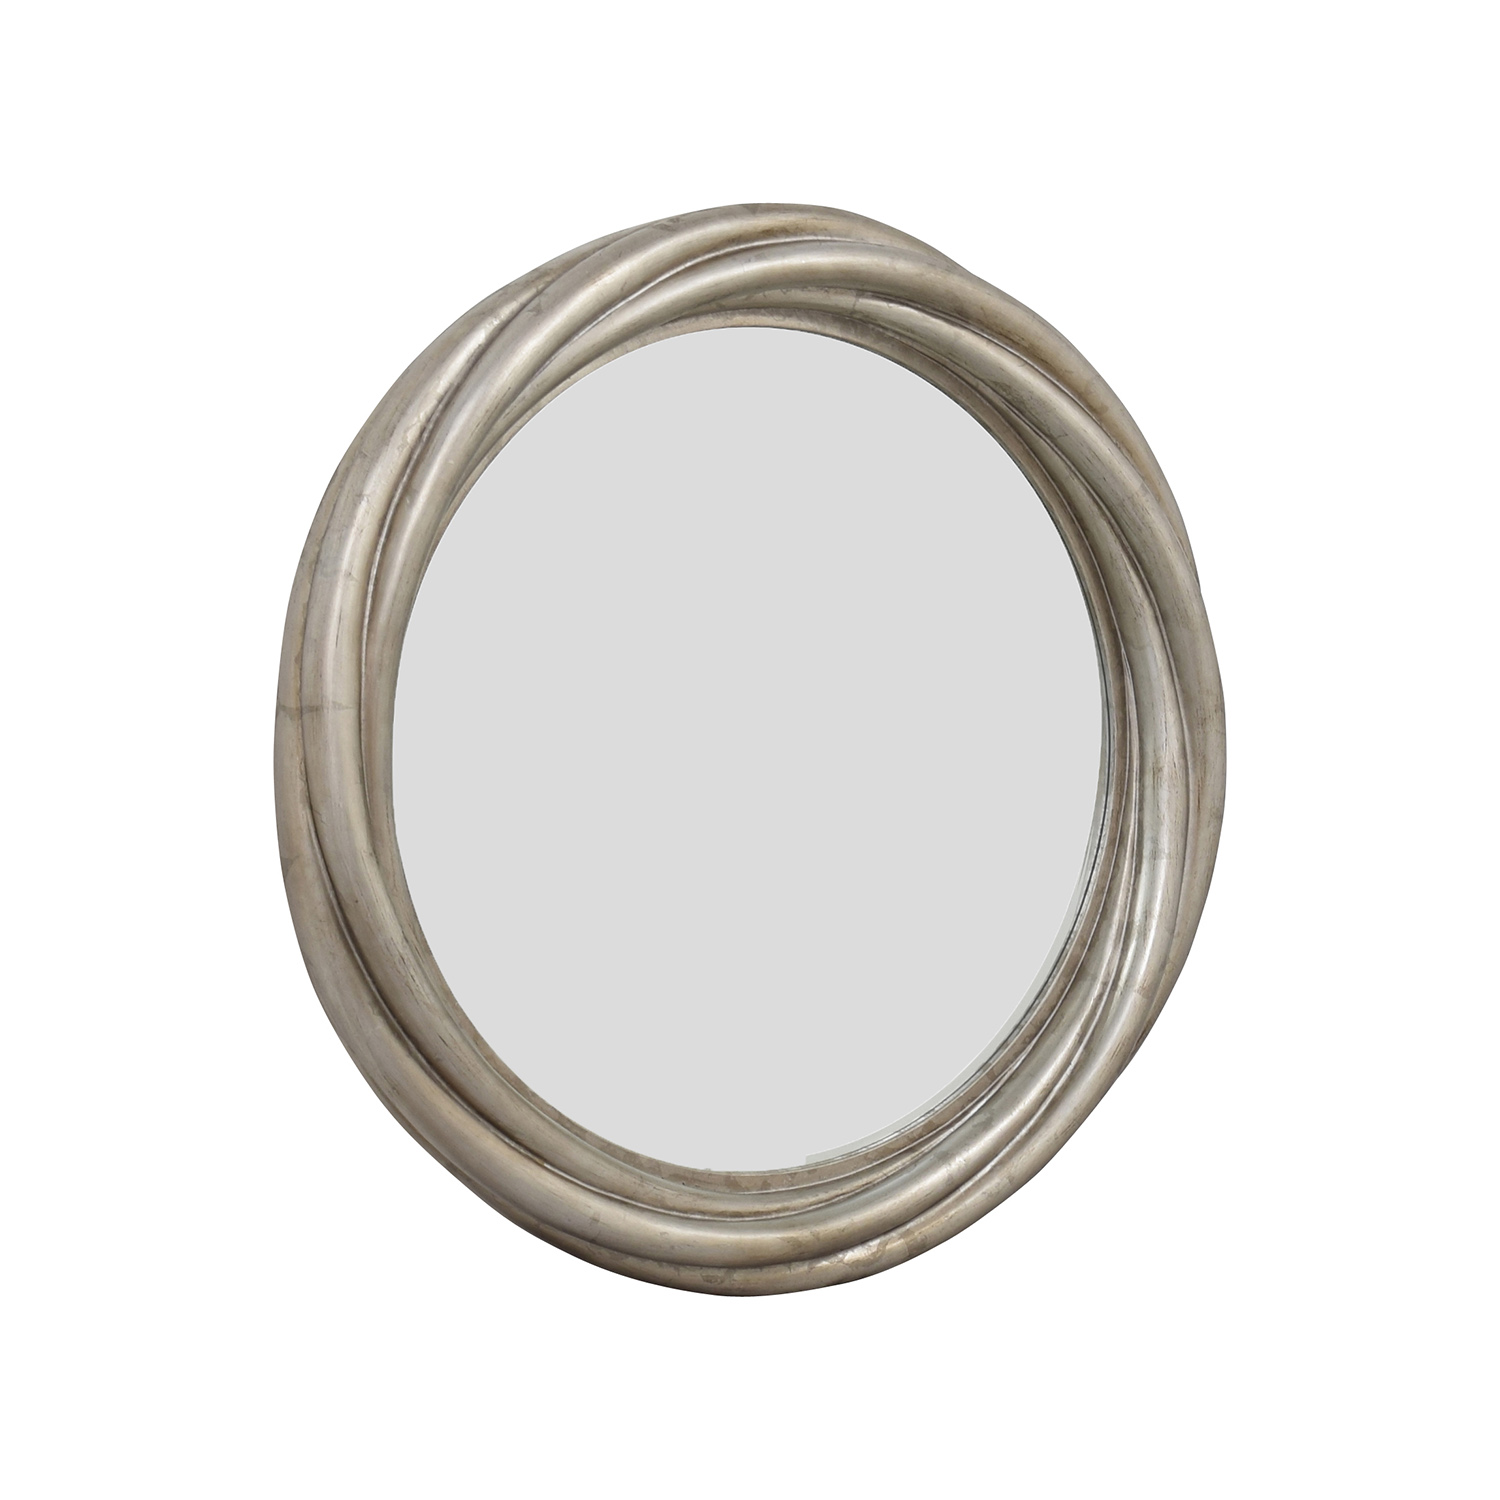 "Thomasville Bogart Collection 47"" Round Wall Mirror sale"